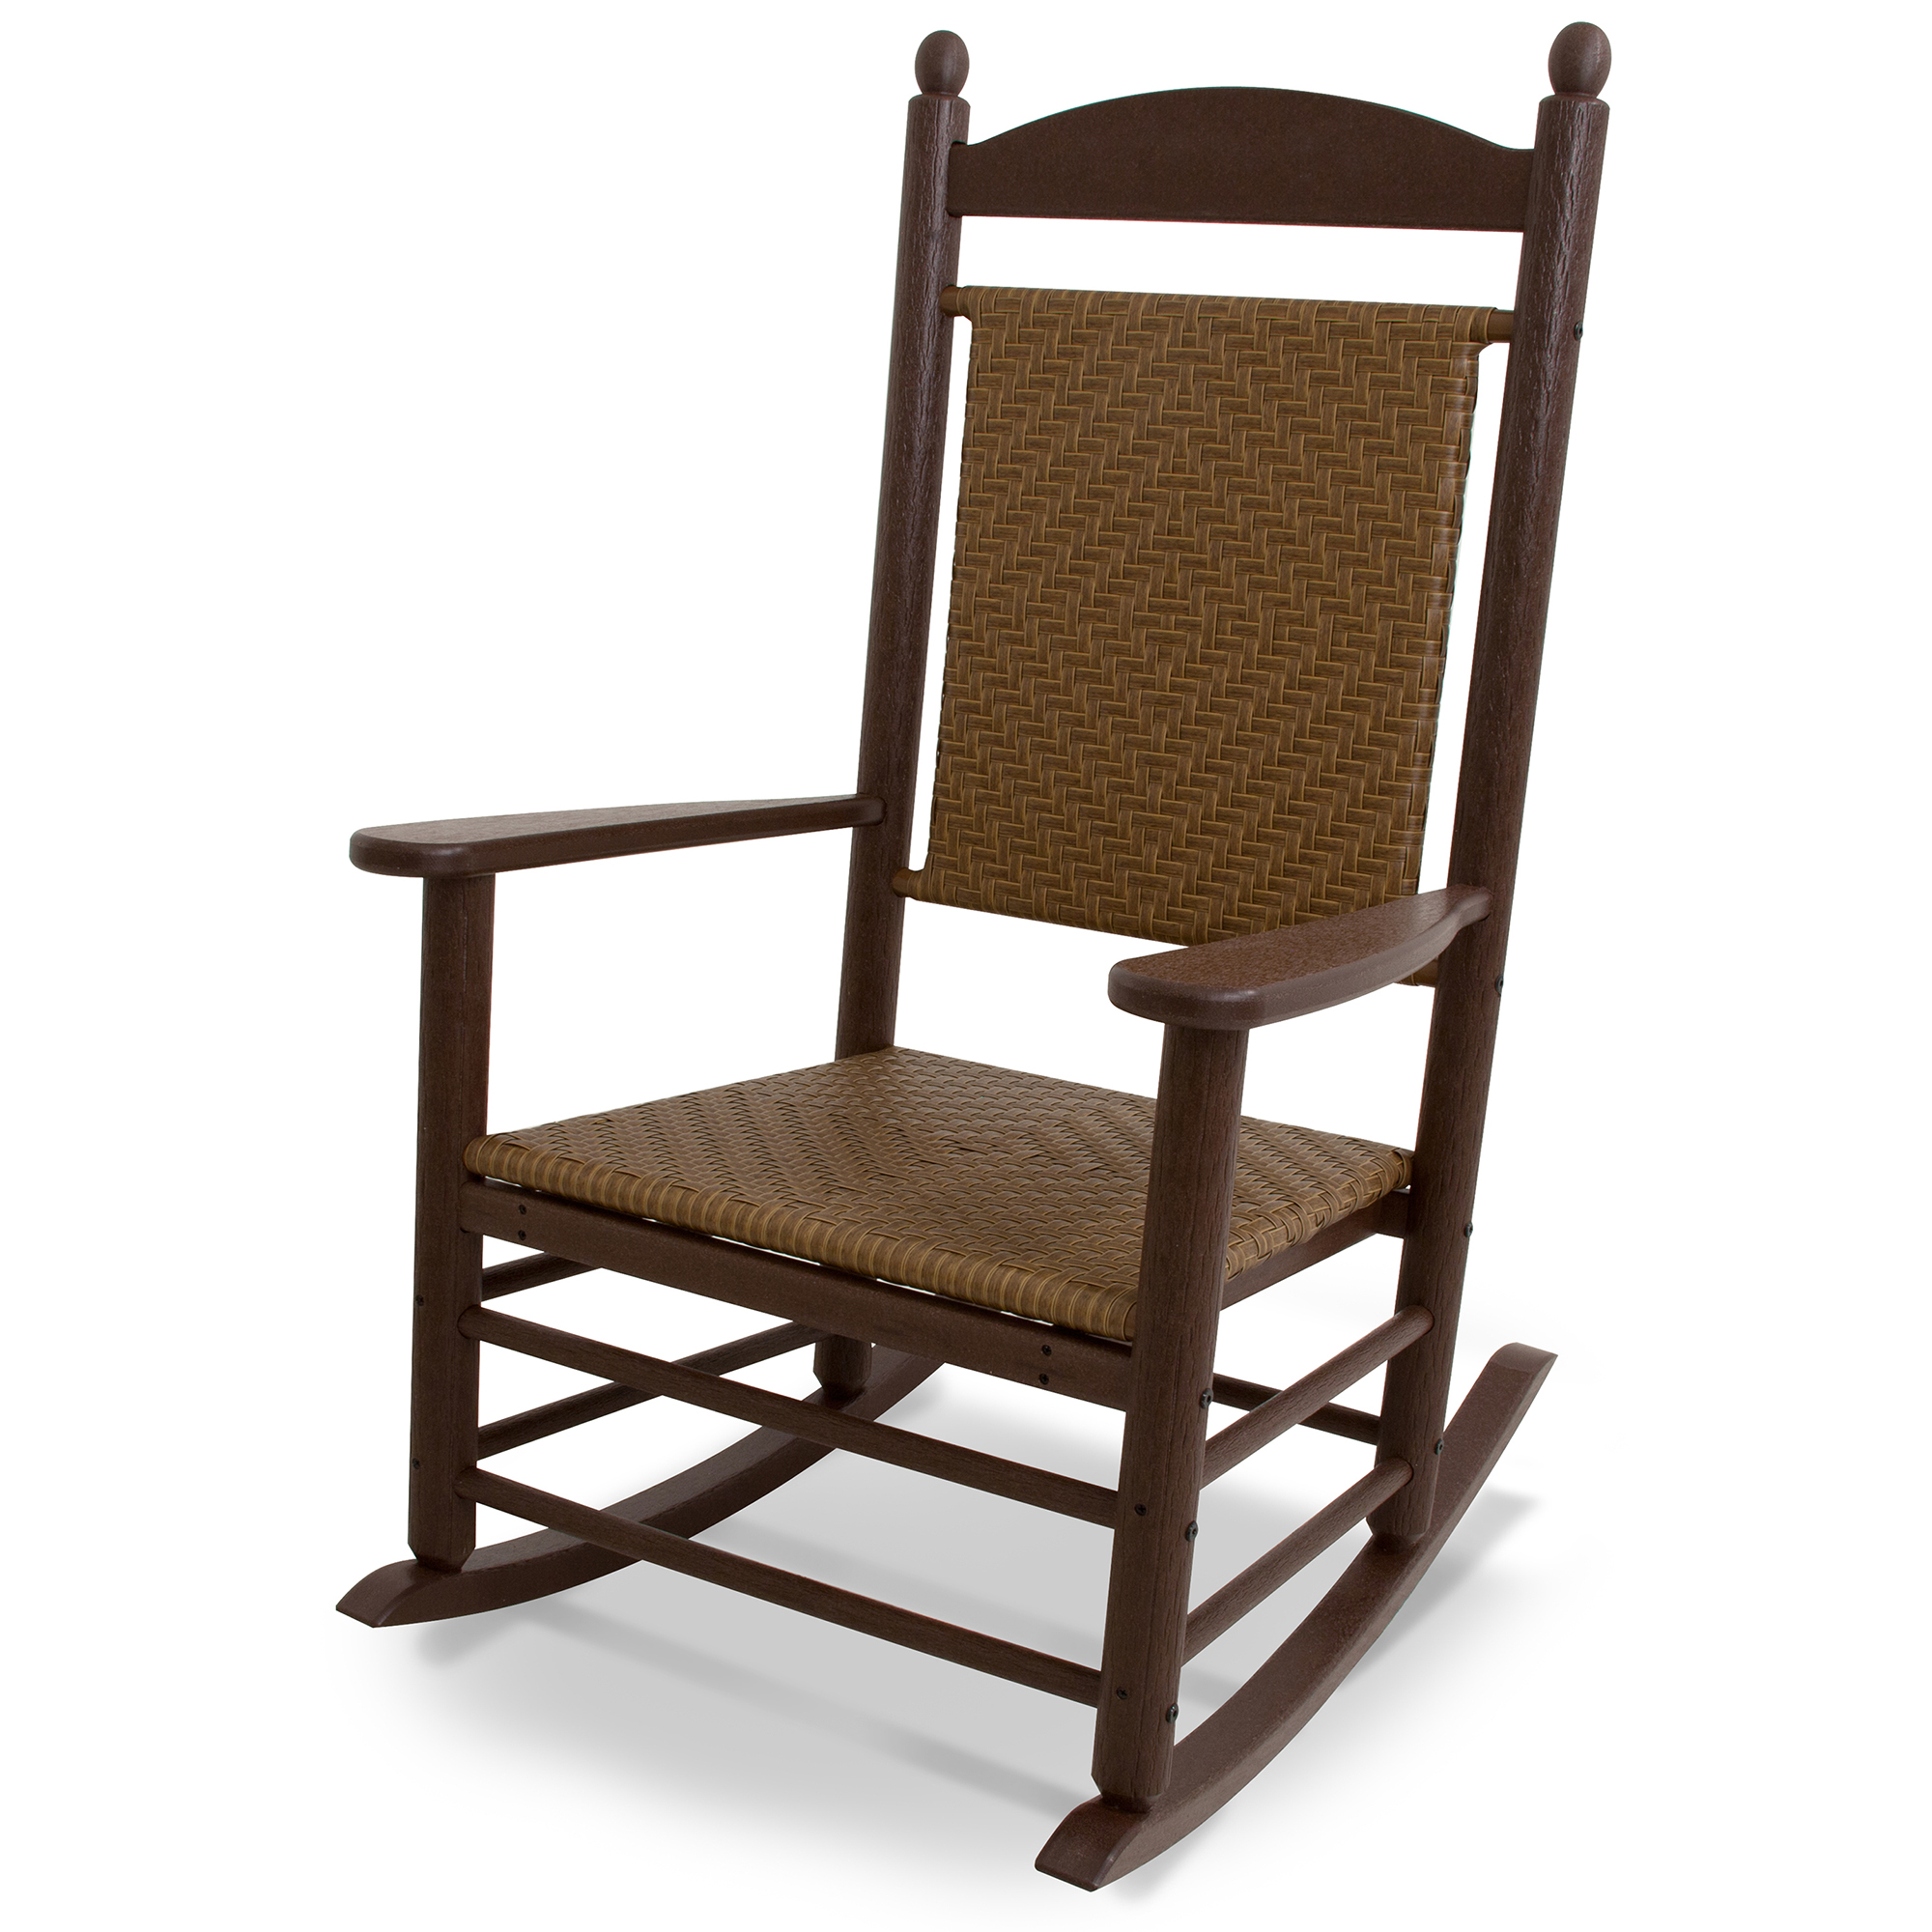 Outdoor furniture all chairs rocking chairs jefferson outdoor rocking - Polywood Reg All Weather Jefferson Woven Rocker Outdoor Furniture Rocking Chairs Cracker Barrel Old Country Store